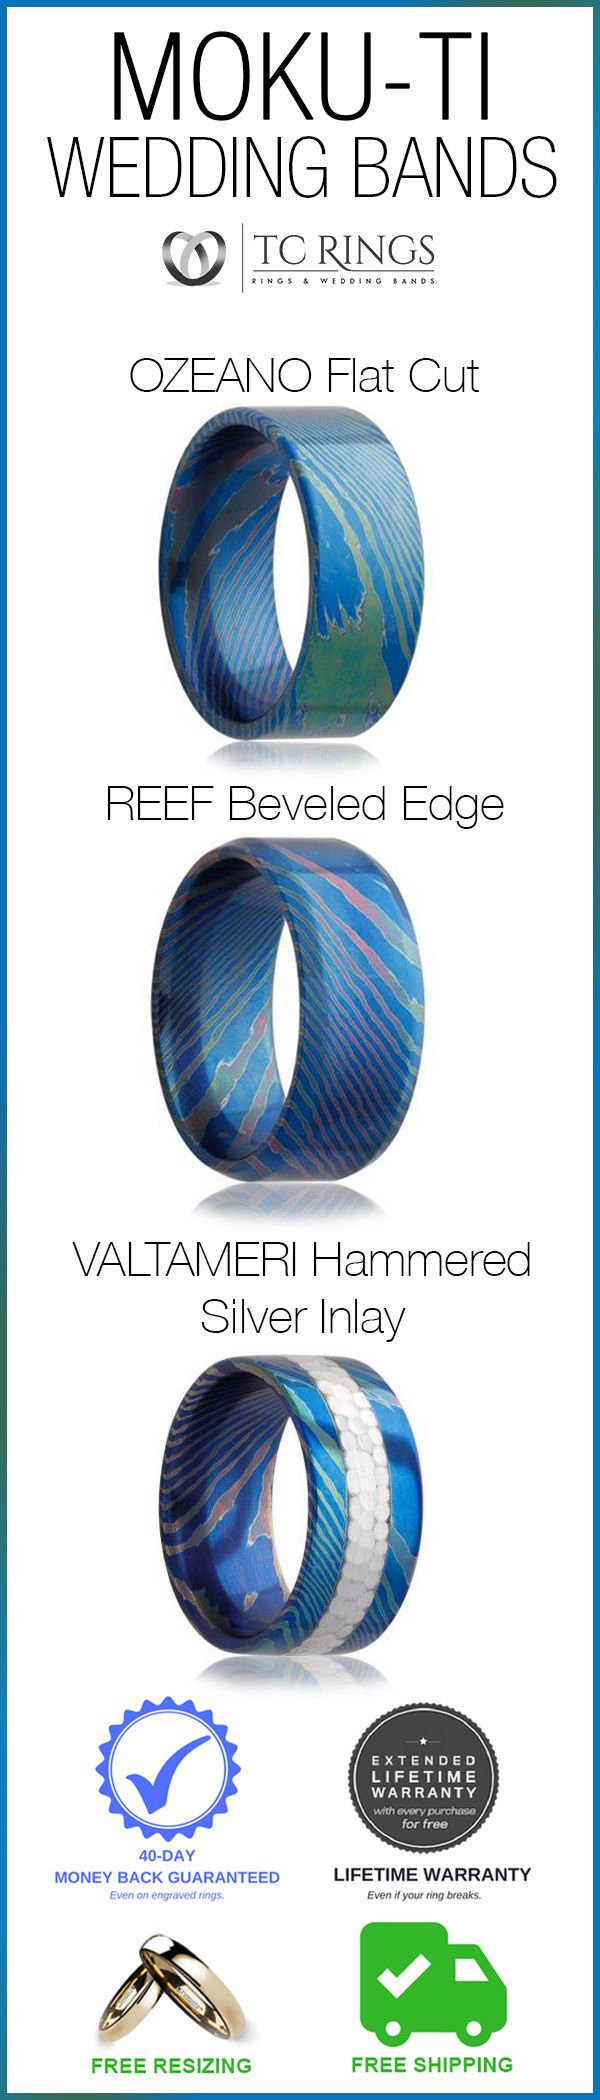 A work of art whose blue and green swirls resemble a satellite image of the ocean. Each ring is unique with some having a reddish speck or streak. OZEANO, REEF, & VALTAMERI formed from a mix of titanium and other metals, has a classic flat cut style and a Comfort Fit band and are show stoppers this year!